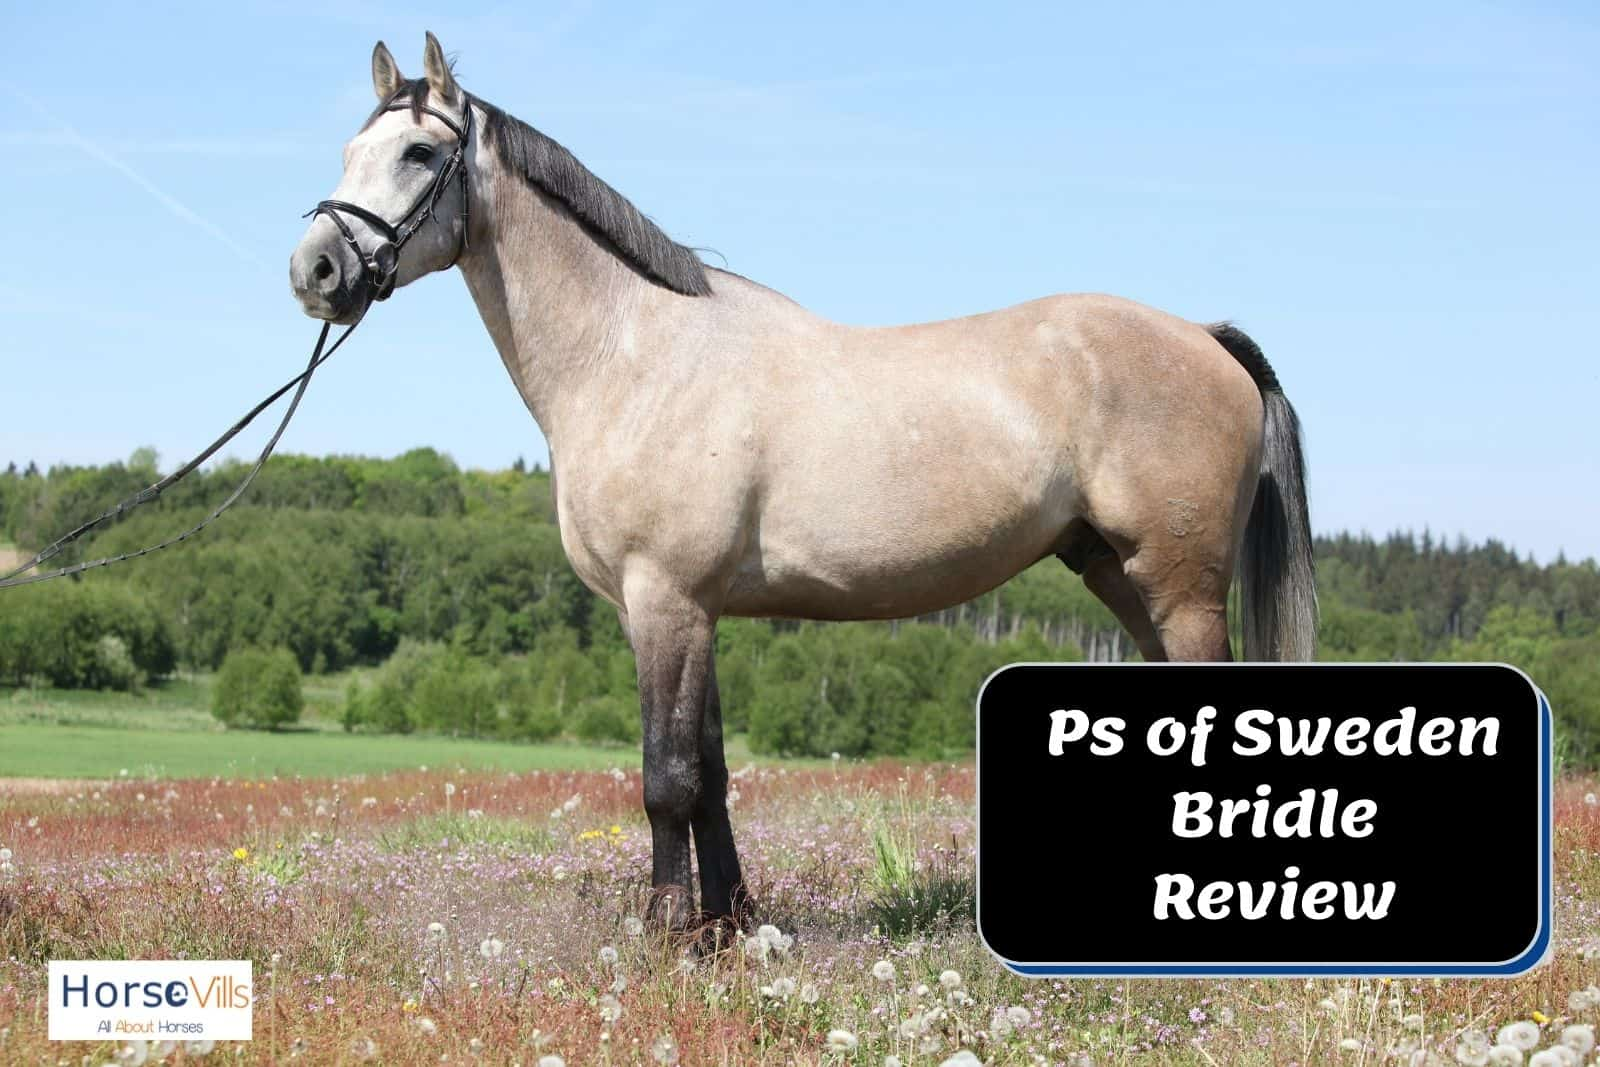 greyish horse standing gracefully for a PS of Sweden bridle review